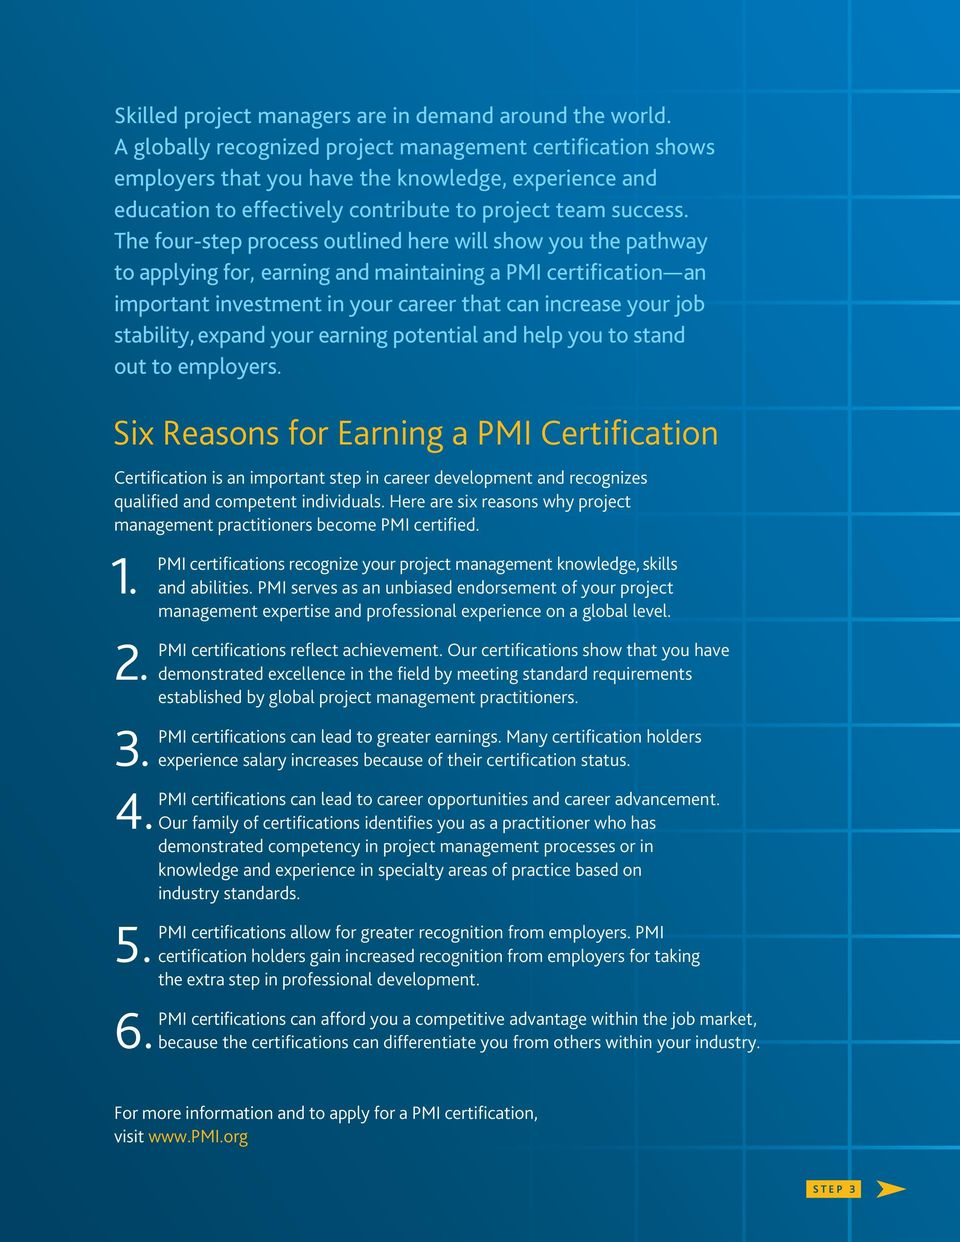 The four-step process outlined here will show you the pathway to applying for, earning and maintaining a PMI certification an important investment in your career that can increase your job stability,